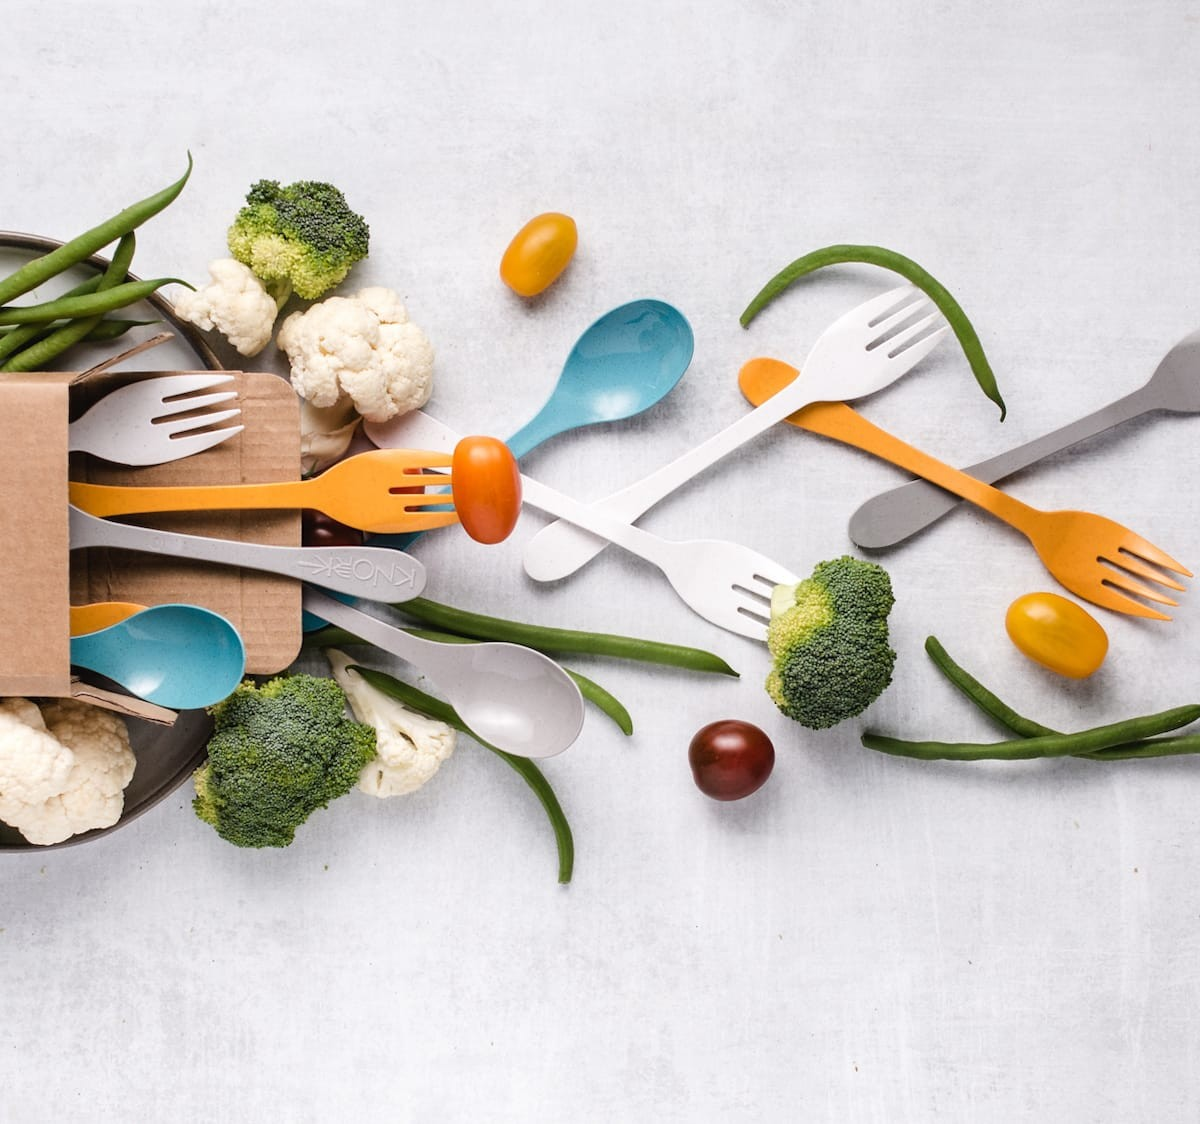 ECO kitchen cutlery sets are made from sugarcane and bamboo to limit single-use plastics